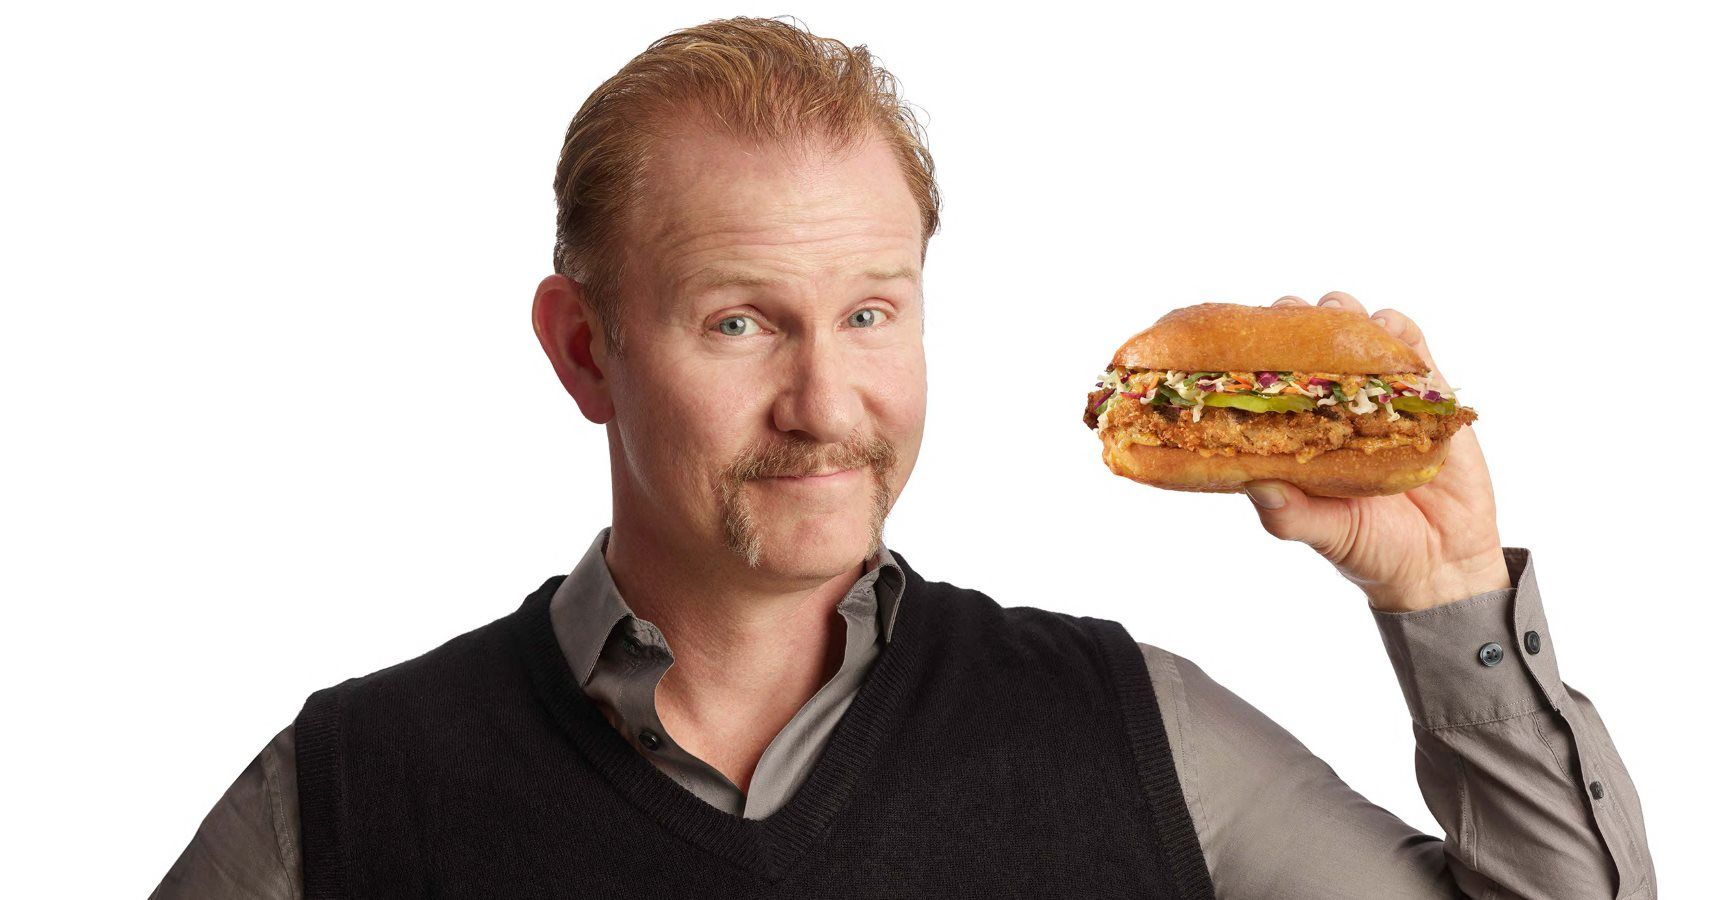 super size it Morgan spurlock, the director of super size me, came up with a great hook for his debut as a documentary filmmaker his experiment, to eat nothing but three mcdonalds meals a day every day for 30 consecutive days, provides an entertaining and occasionally disturbing narrative thread that allows for.